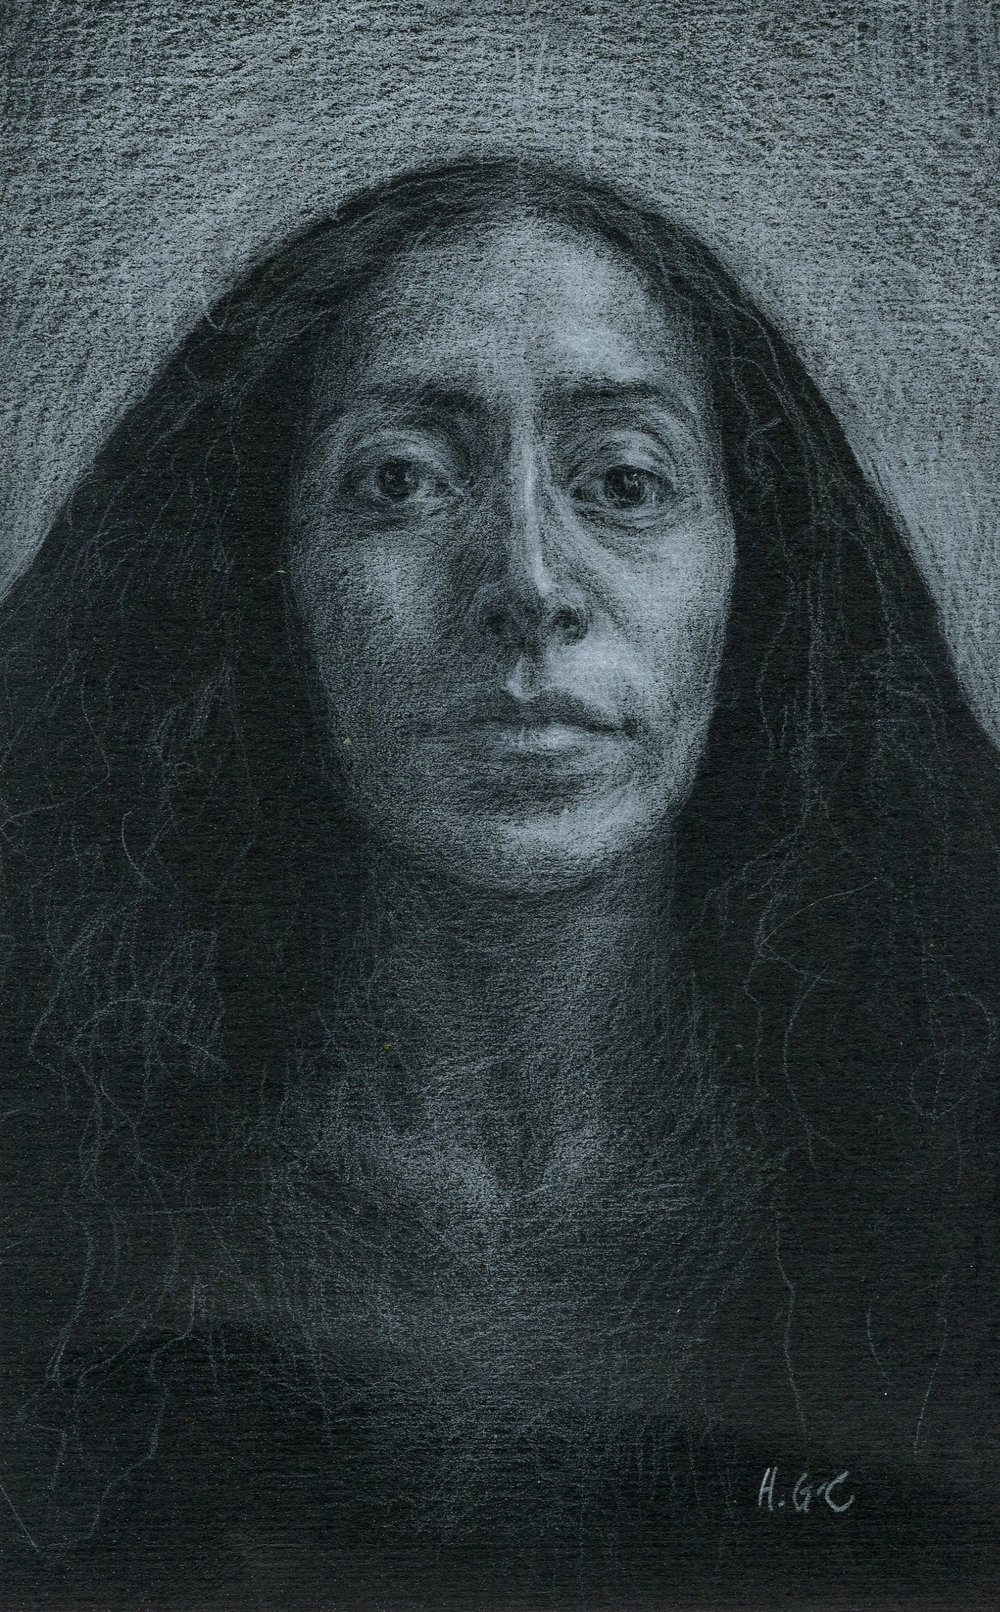 50C HEATHER GOURLAY-CONYNGHAM, ALEJANDRA, CHALK PASTEL ON PAPER